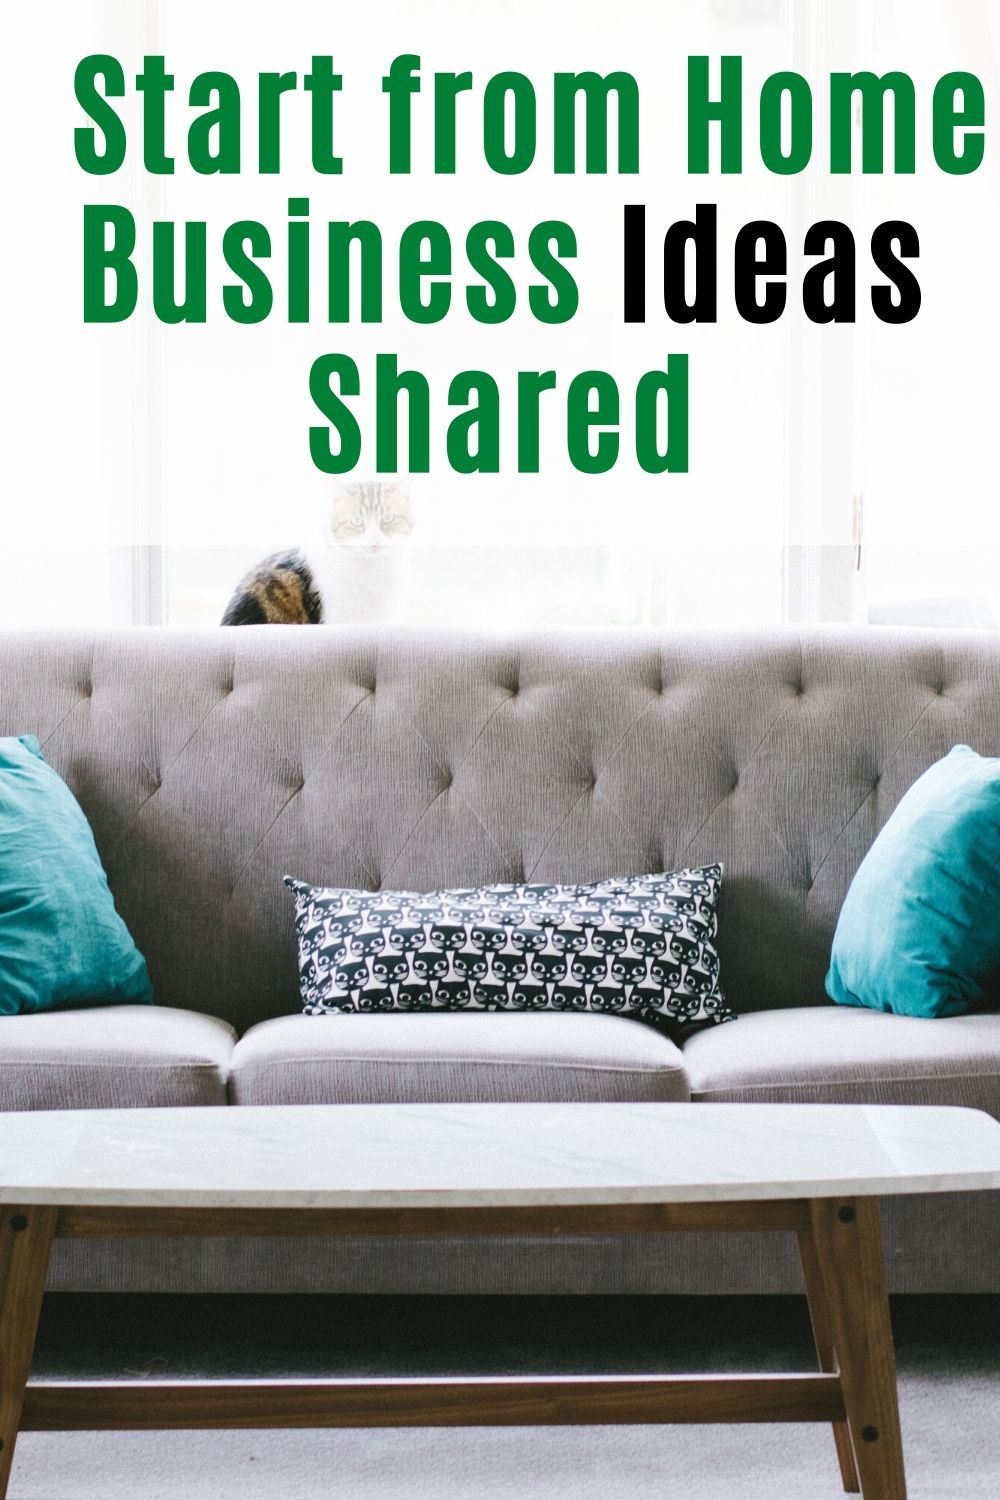 Start from Home Business Ideas Shared